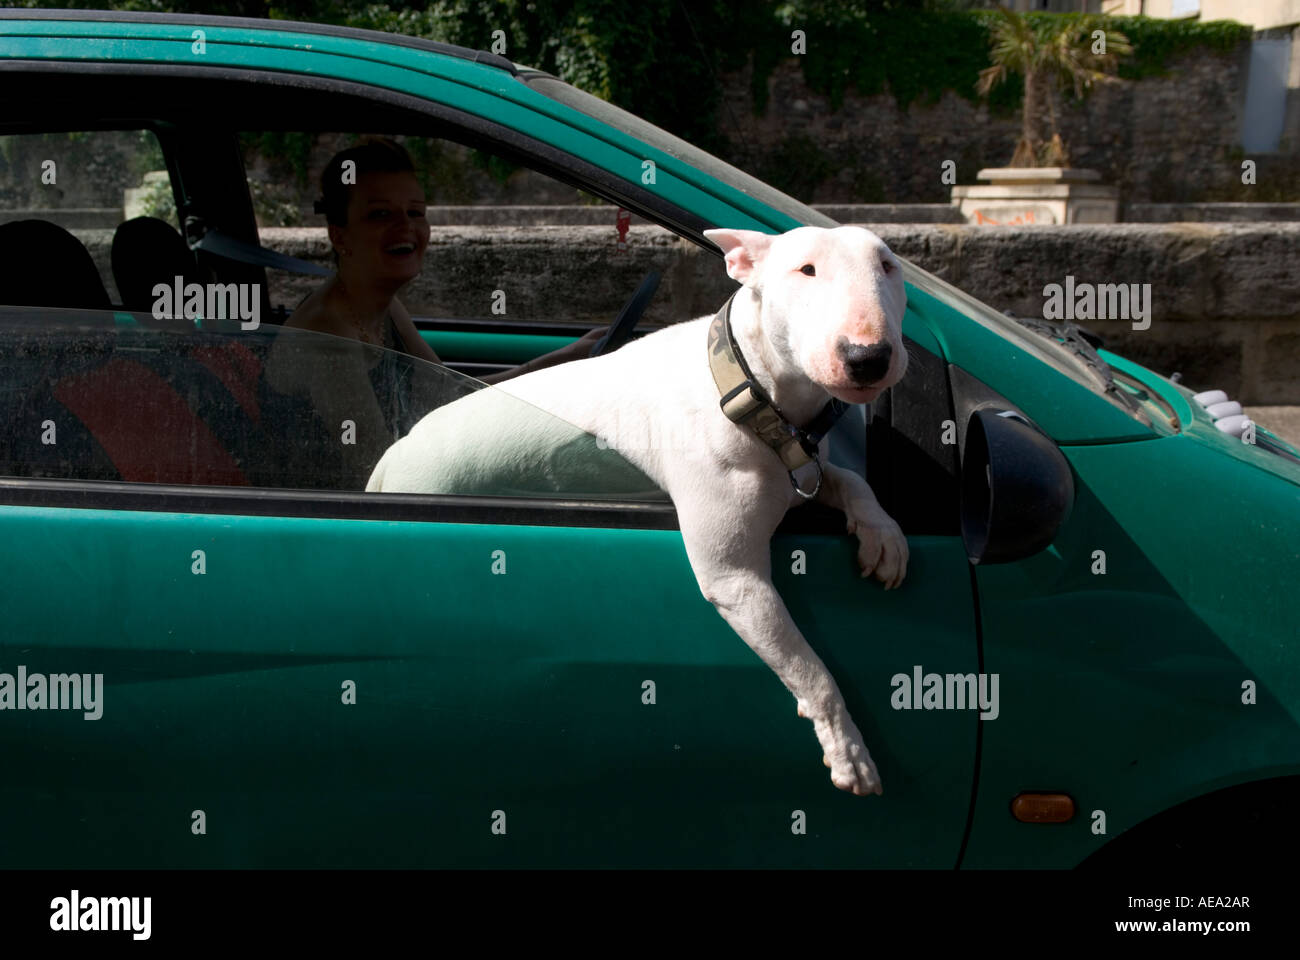 an english bull terrier leans out of a moving car window with his leg hanging down - Stock Image